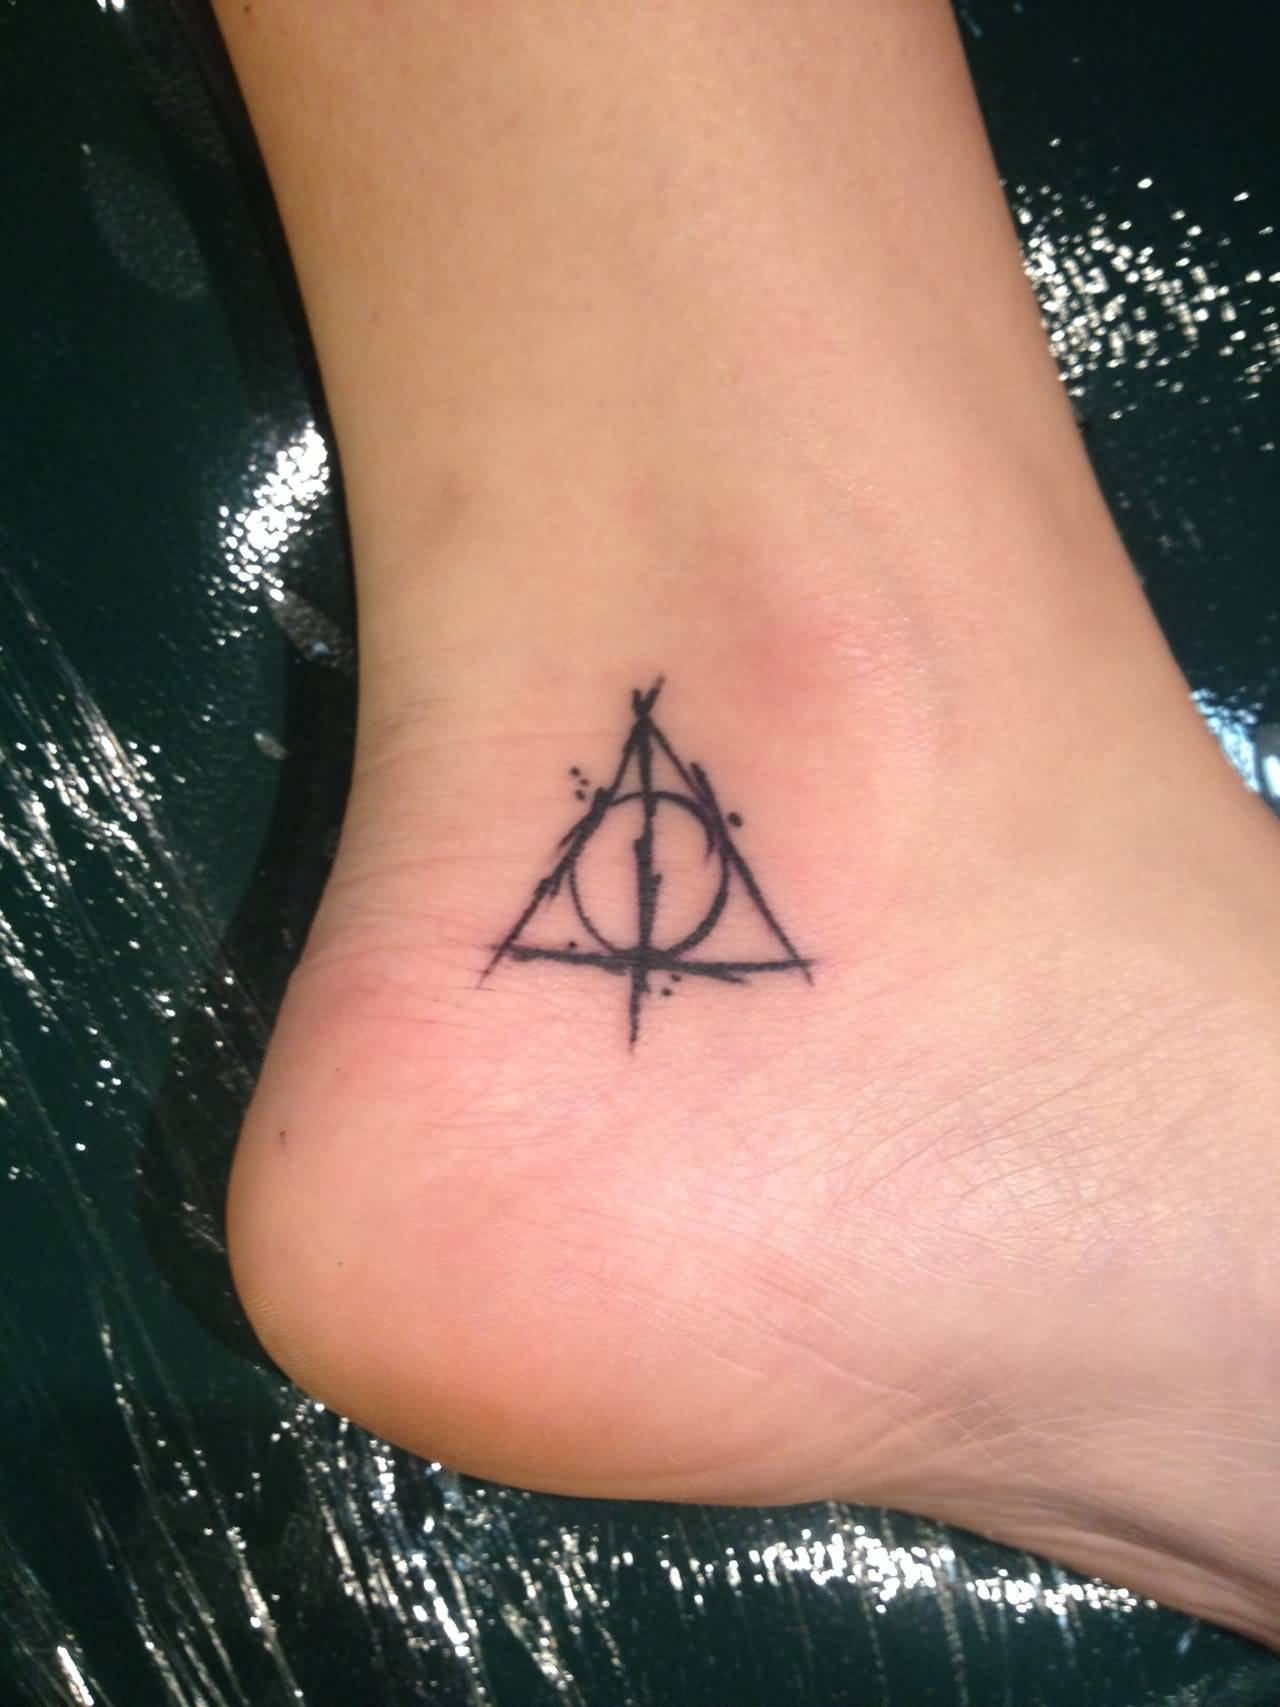 Black Ink Nice Hallows Tattoo On Ankle (2)